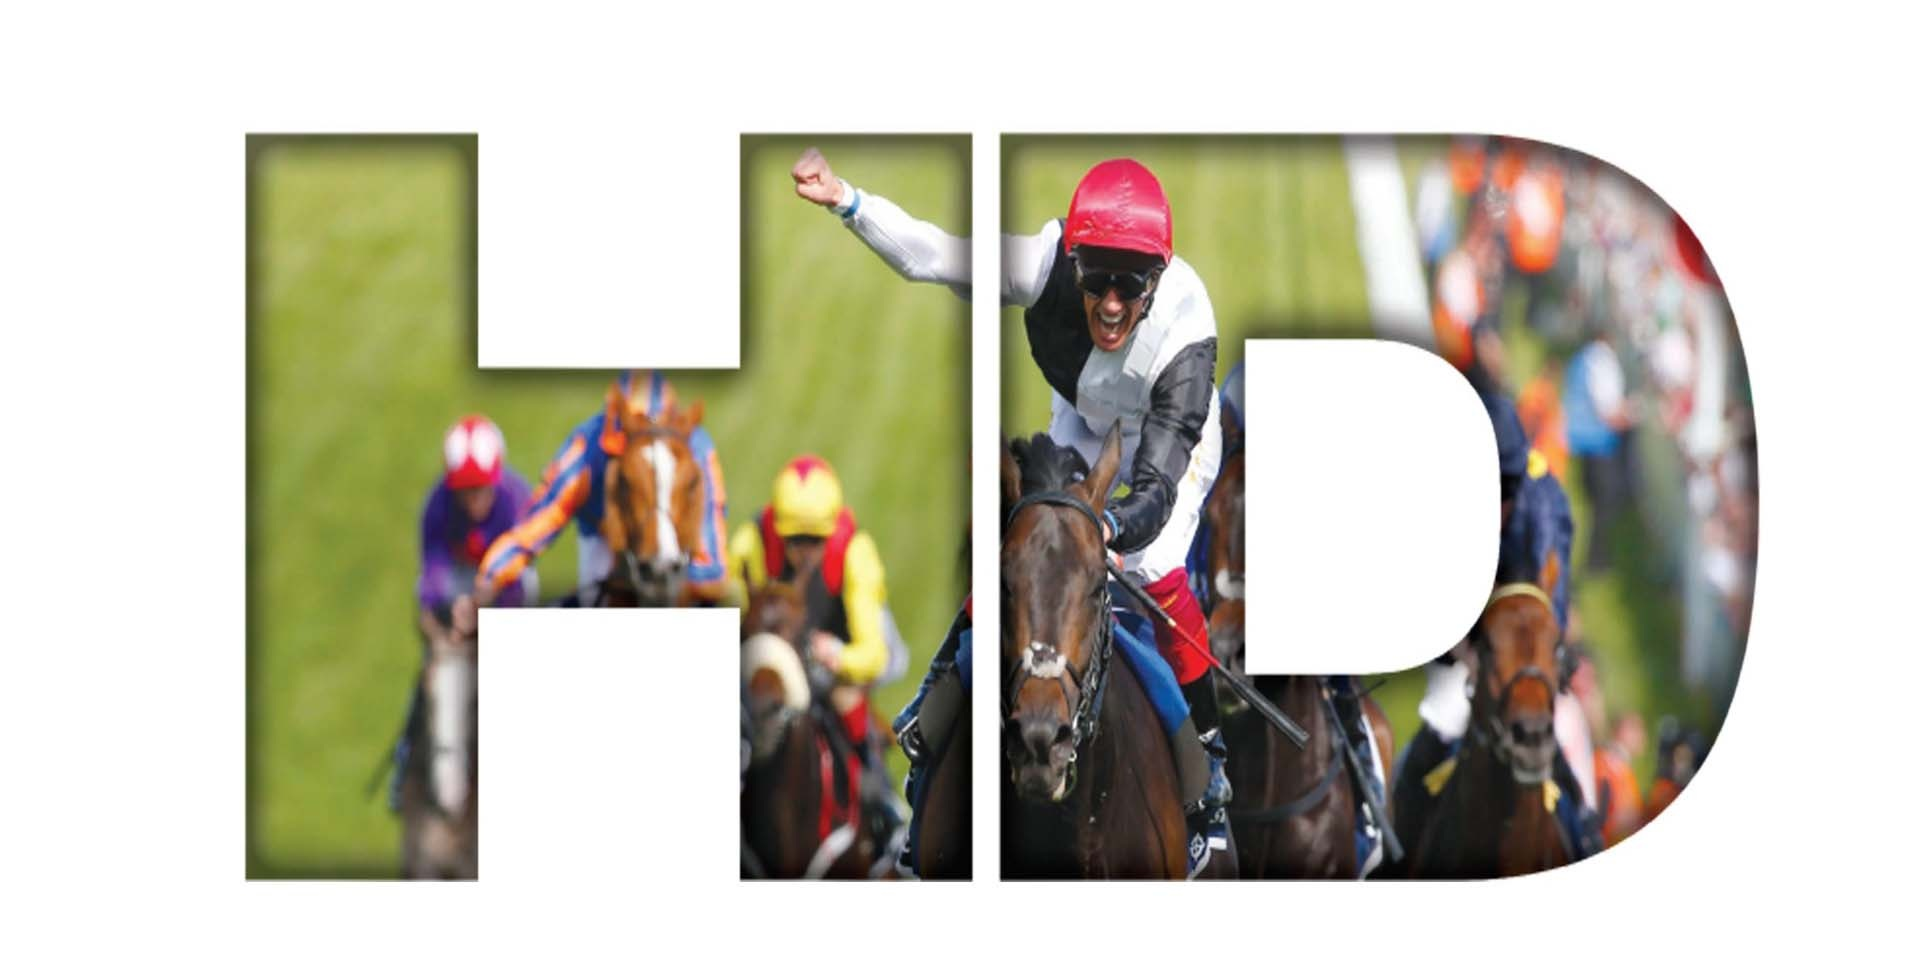 HorseRacingLiveTv.com | Live Horse Racing | Watch Horse Racing Live Online slider